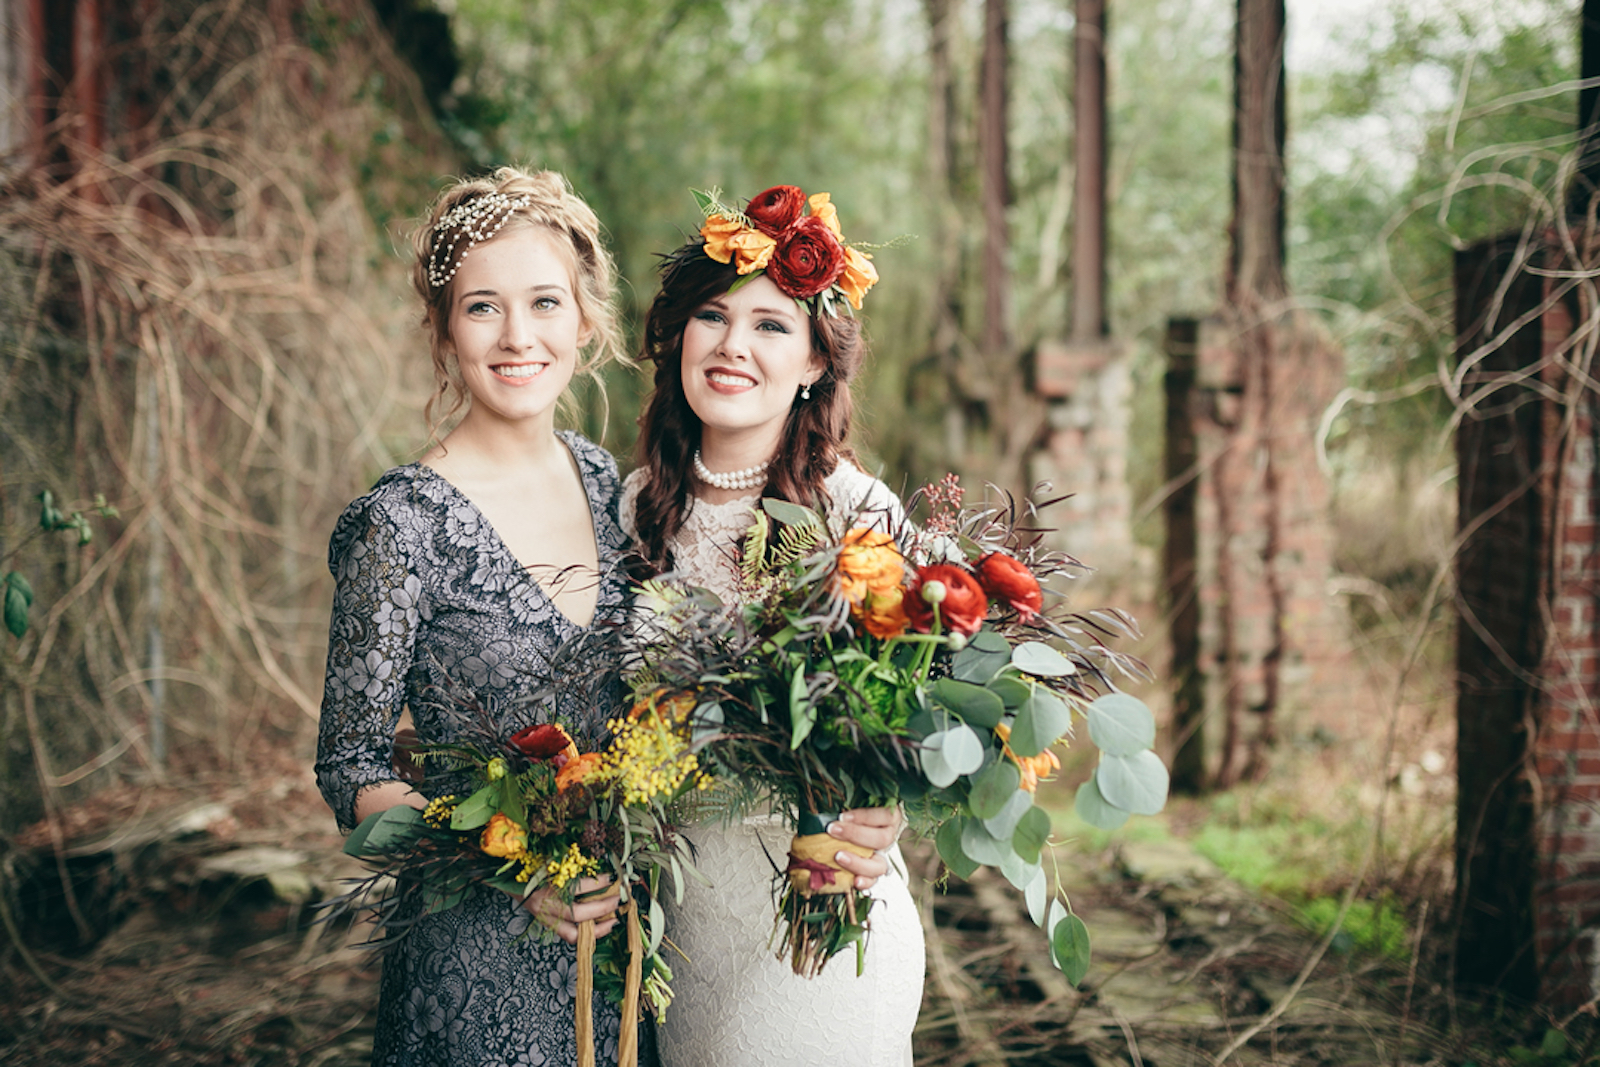 bride and maid of honor with bouquets of orange roses, red ranunculus, and greenery